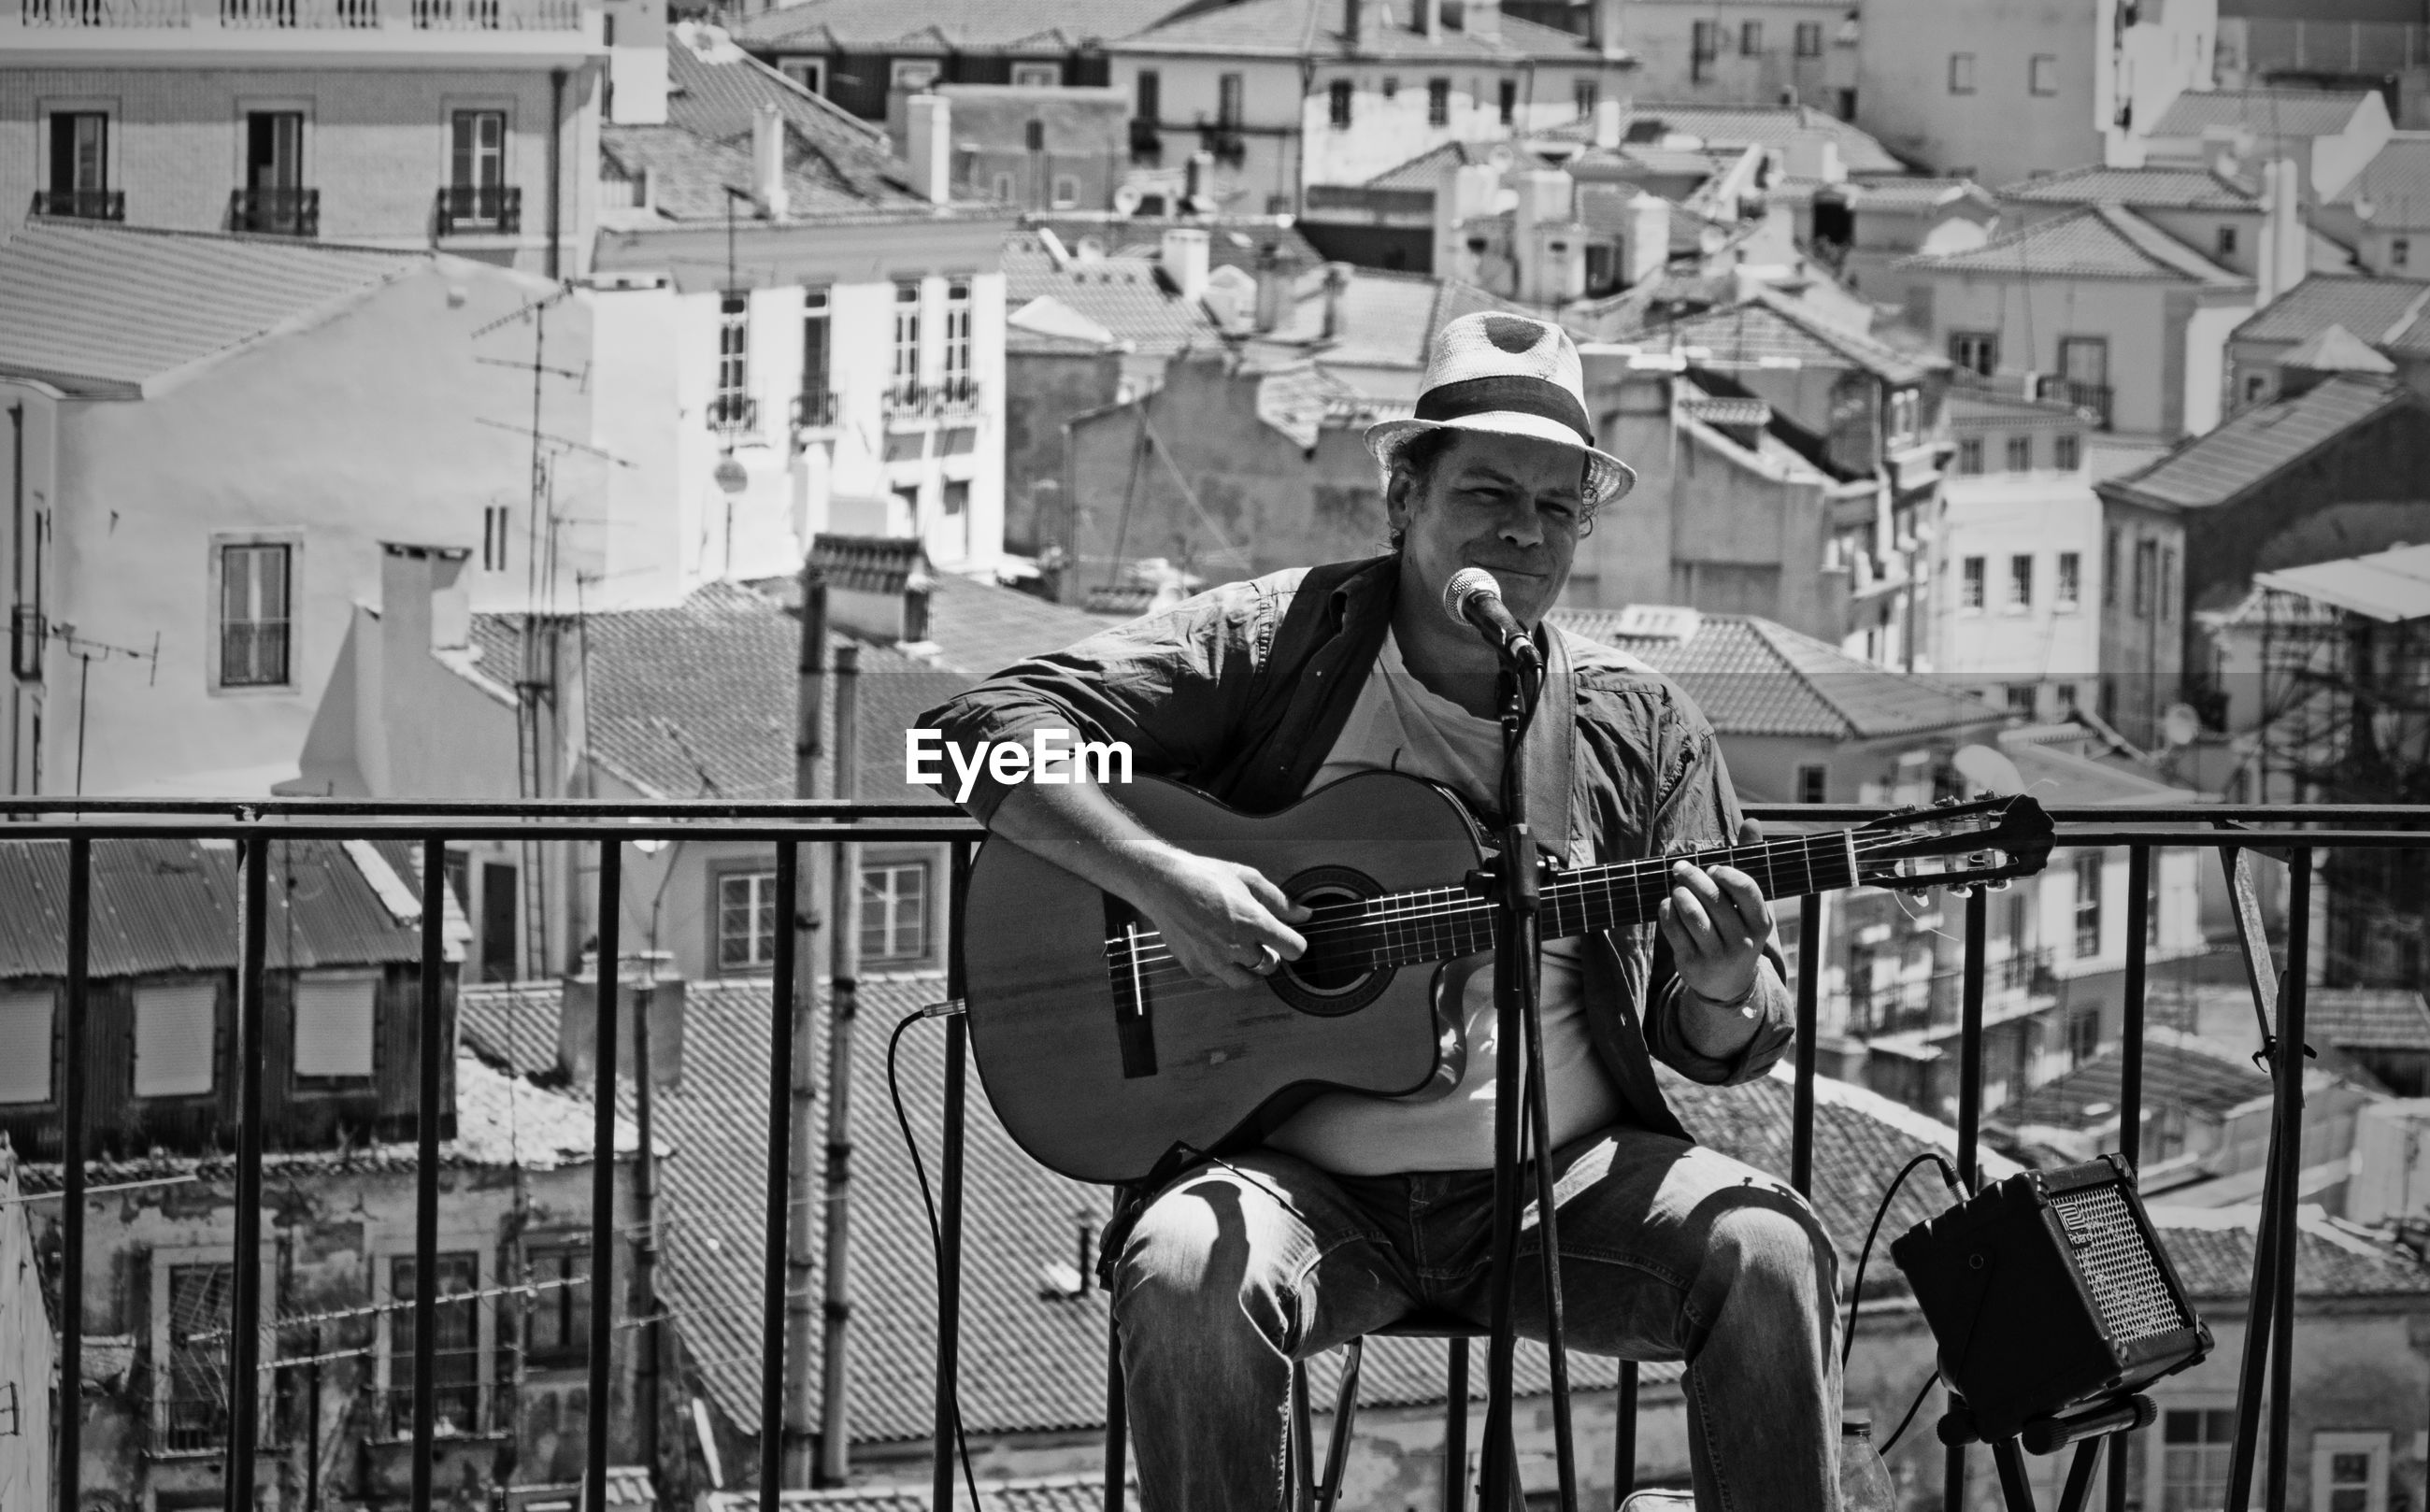 MAN PLAYING GUITAR IN CITY